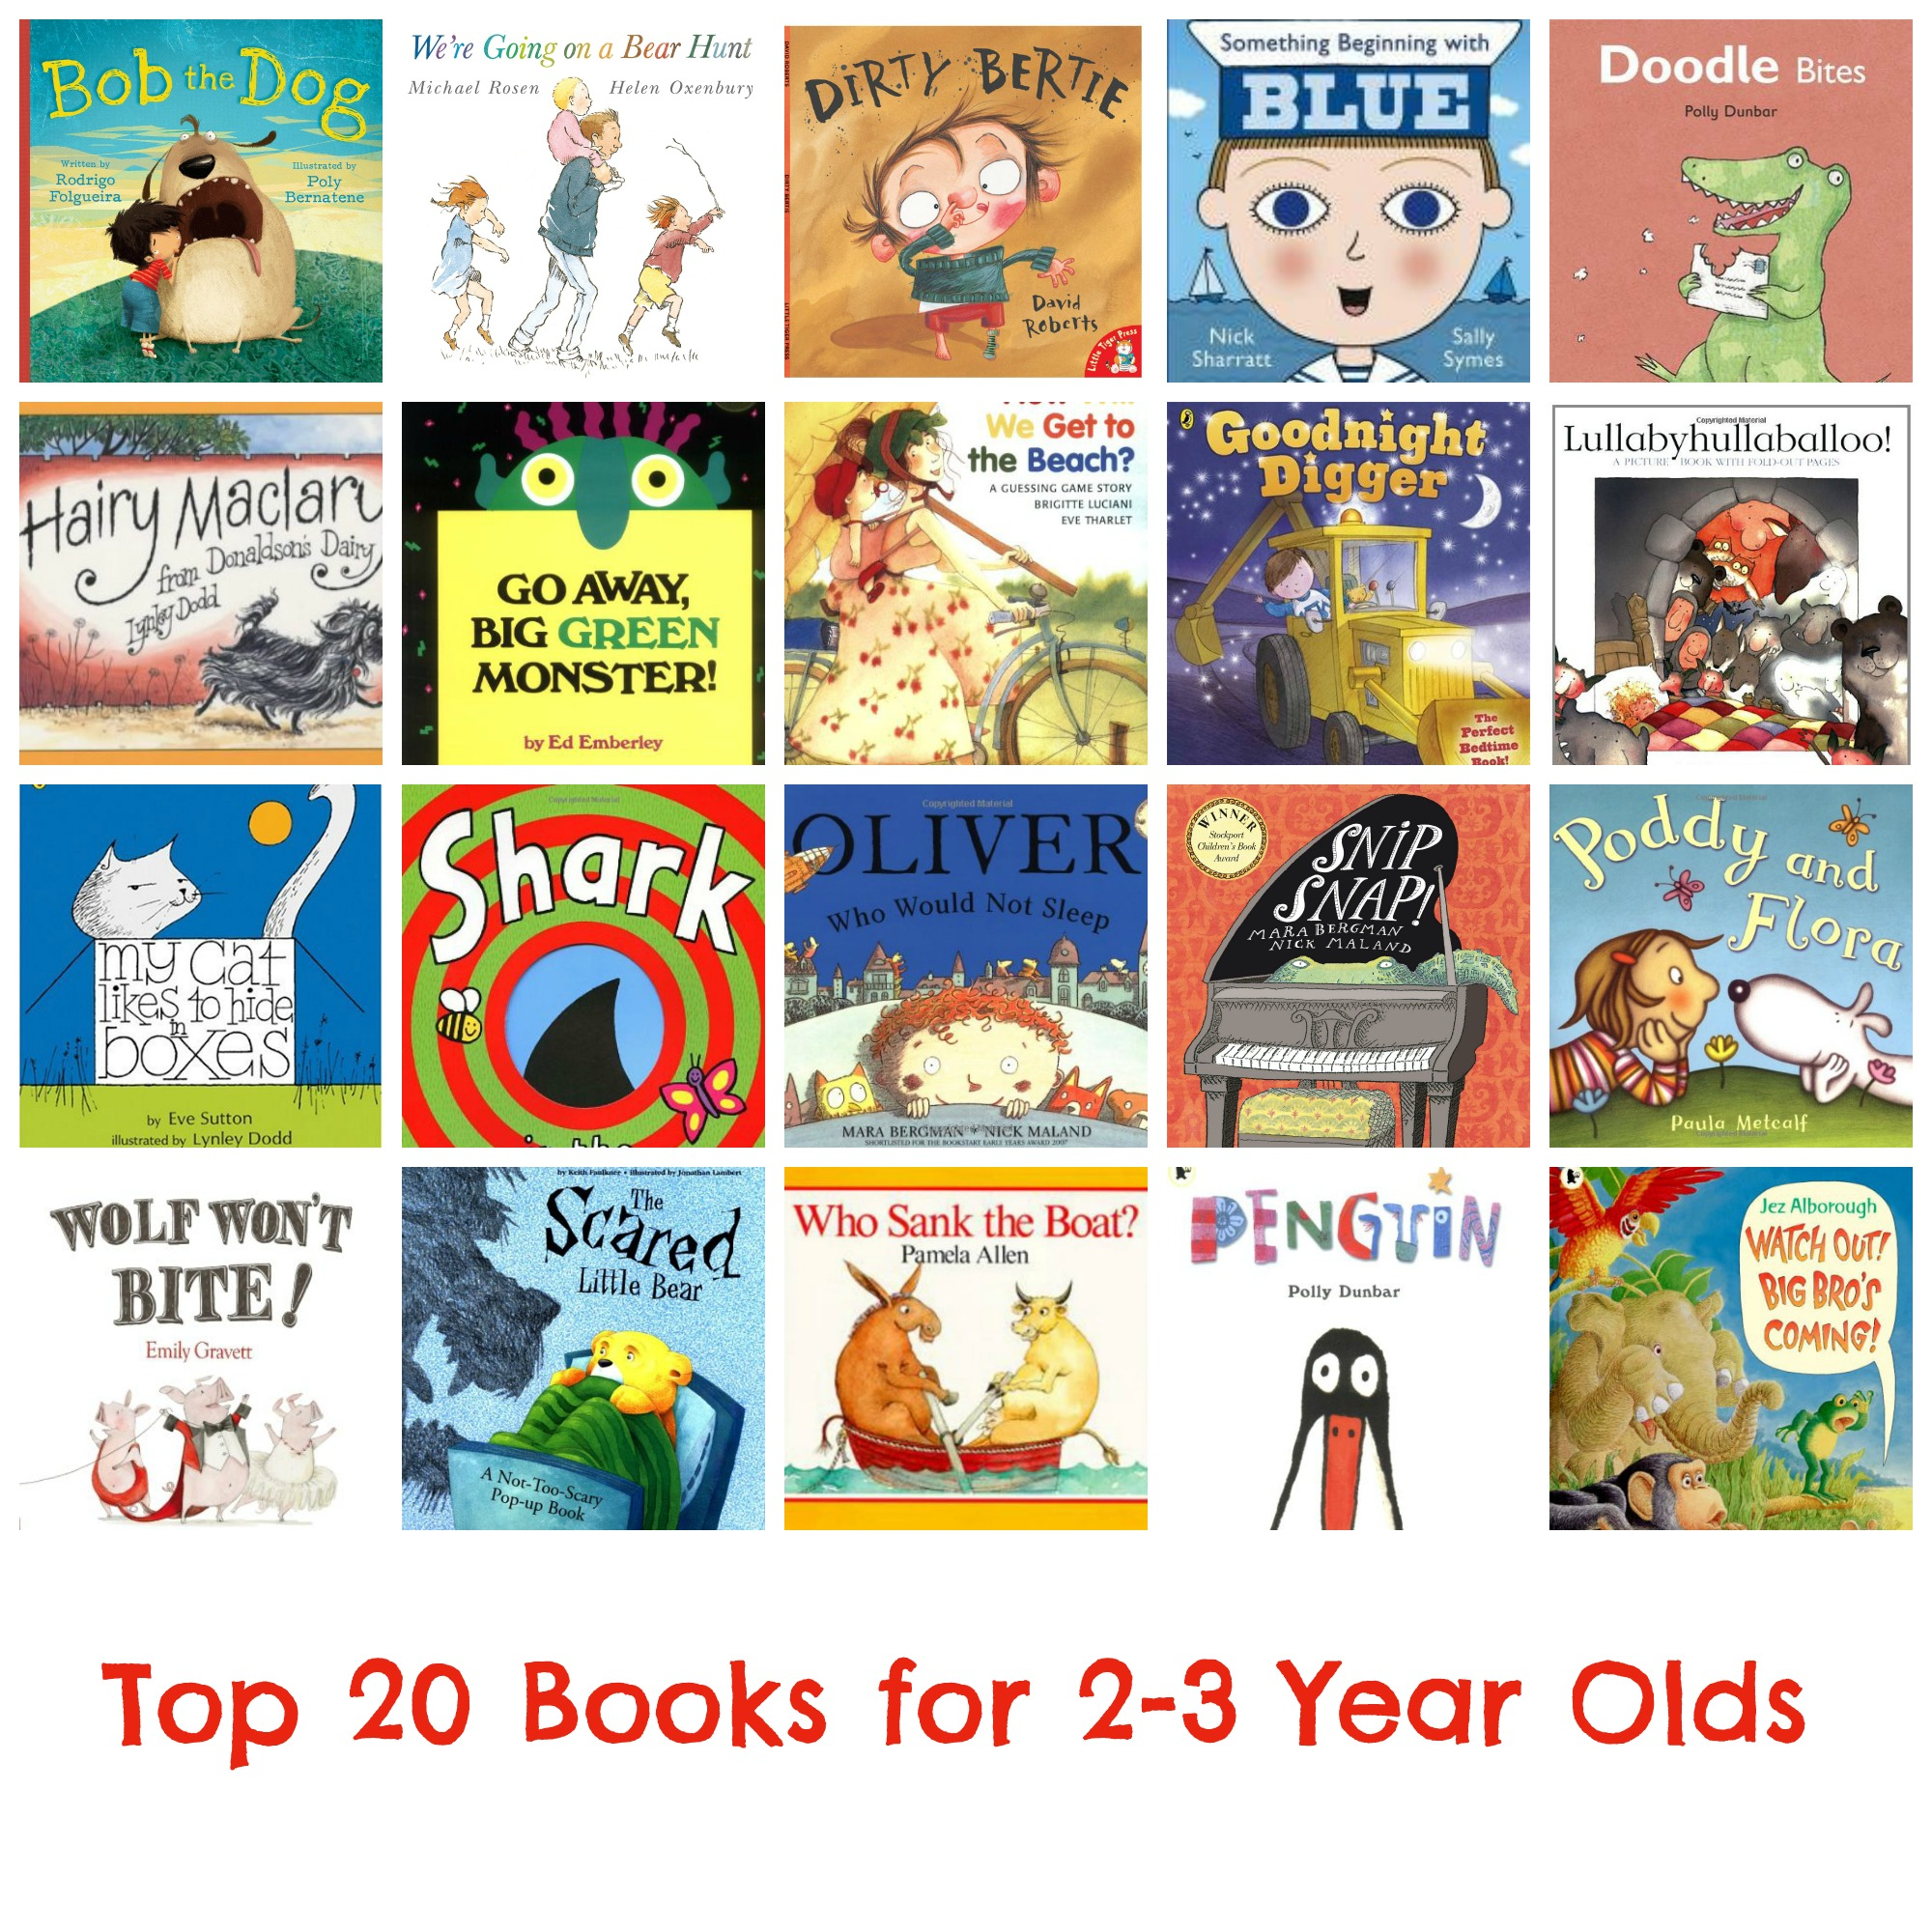 Top 20 Books for 2.